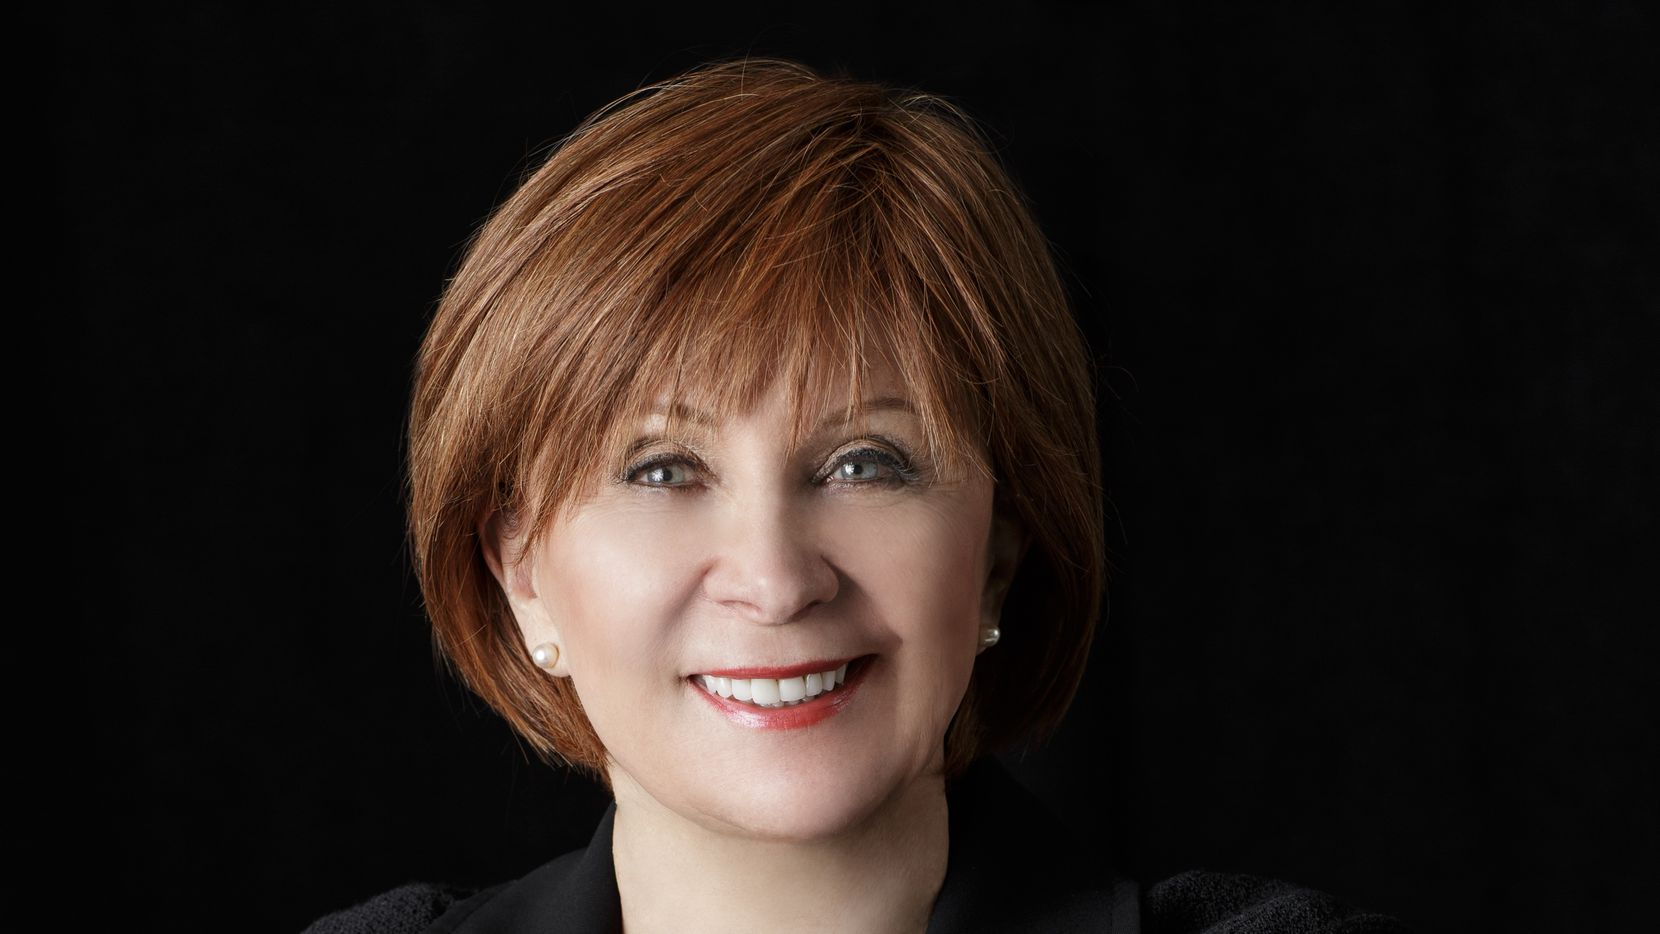 Author Janet Evanovich is back with a new Stephanie Plum novel.